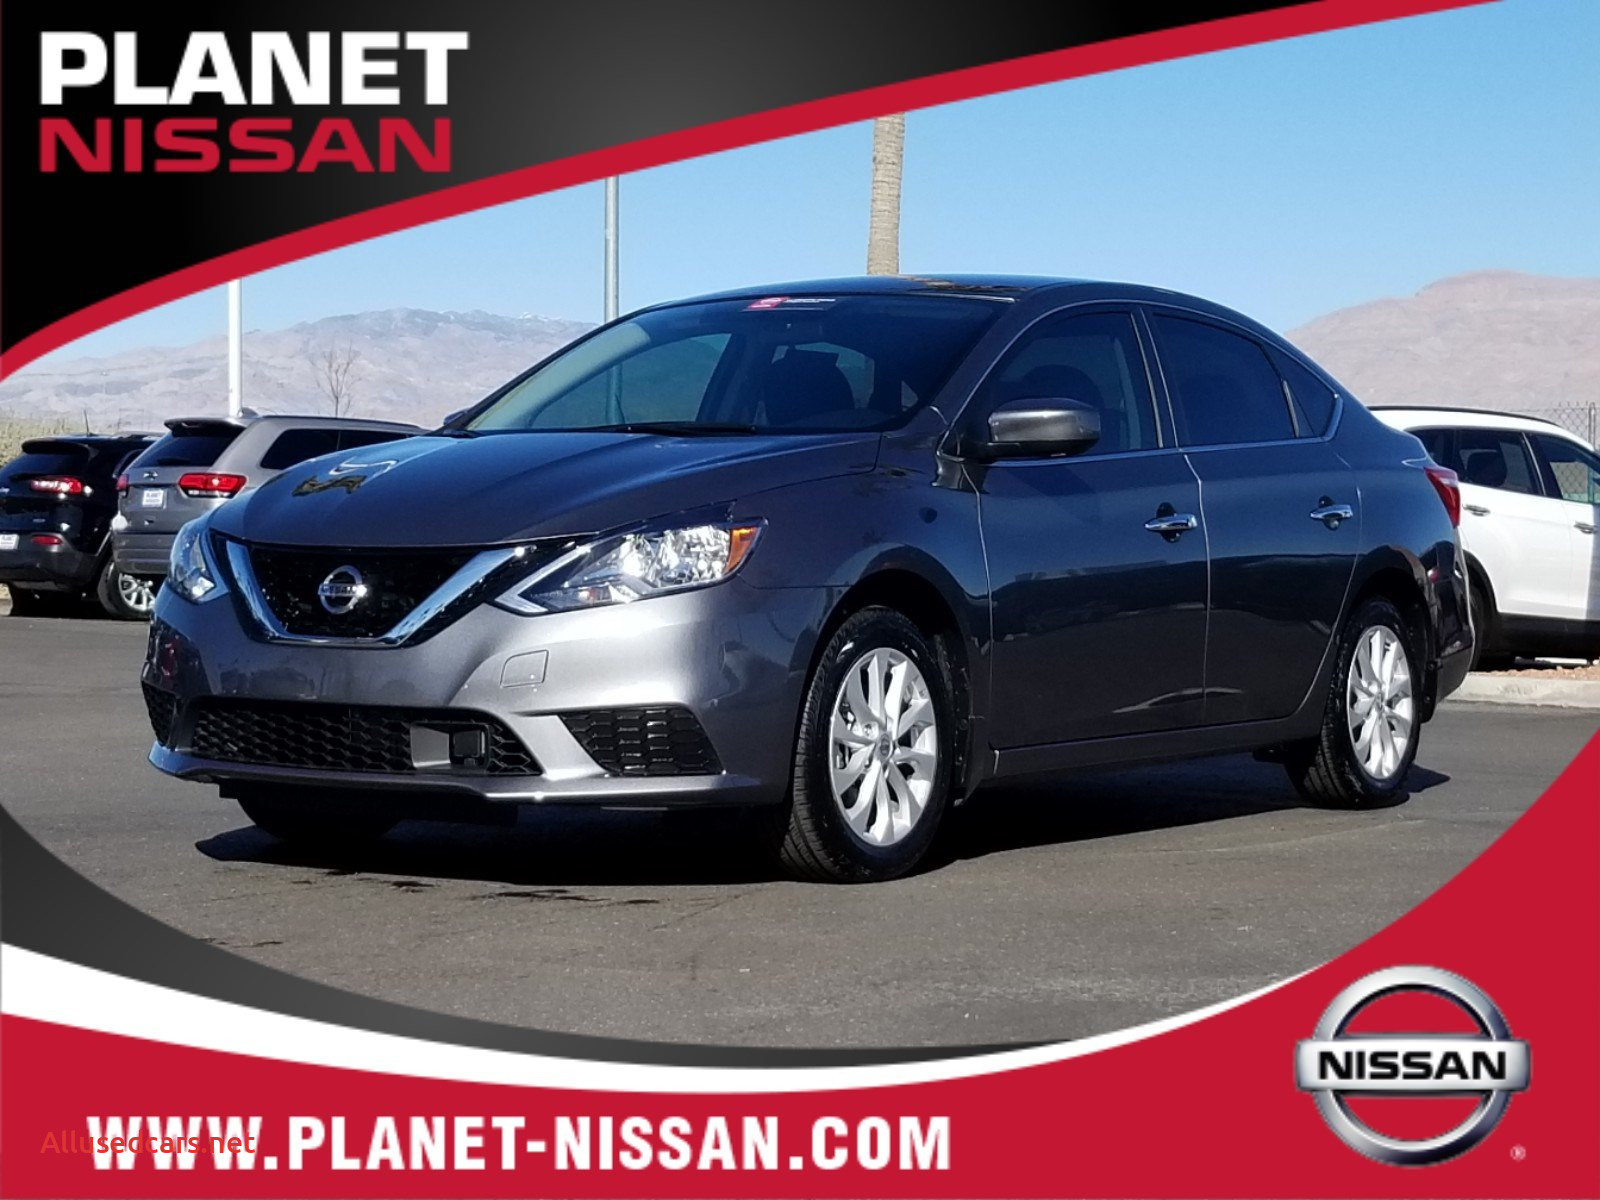 Nissan Sentra for Sale Luxury Certified Pre Owned 2019 Nissan Sentra Sv